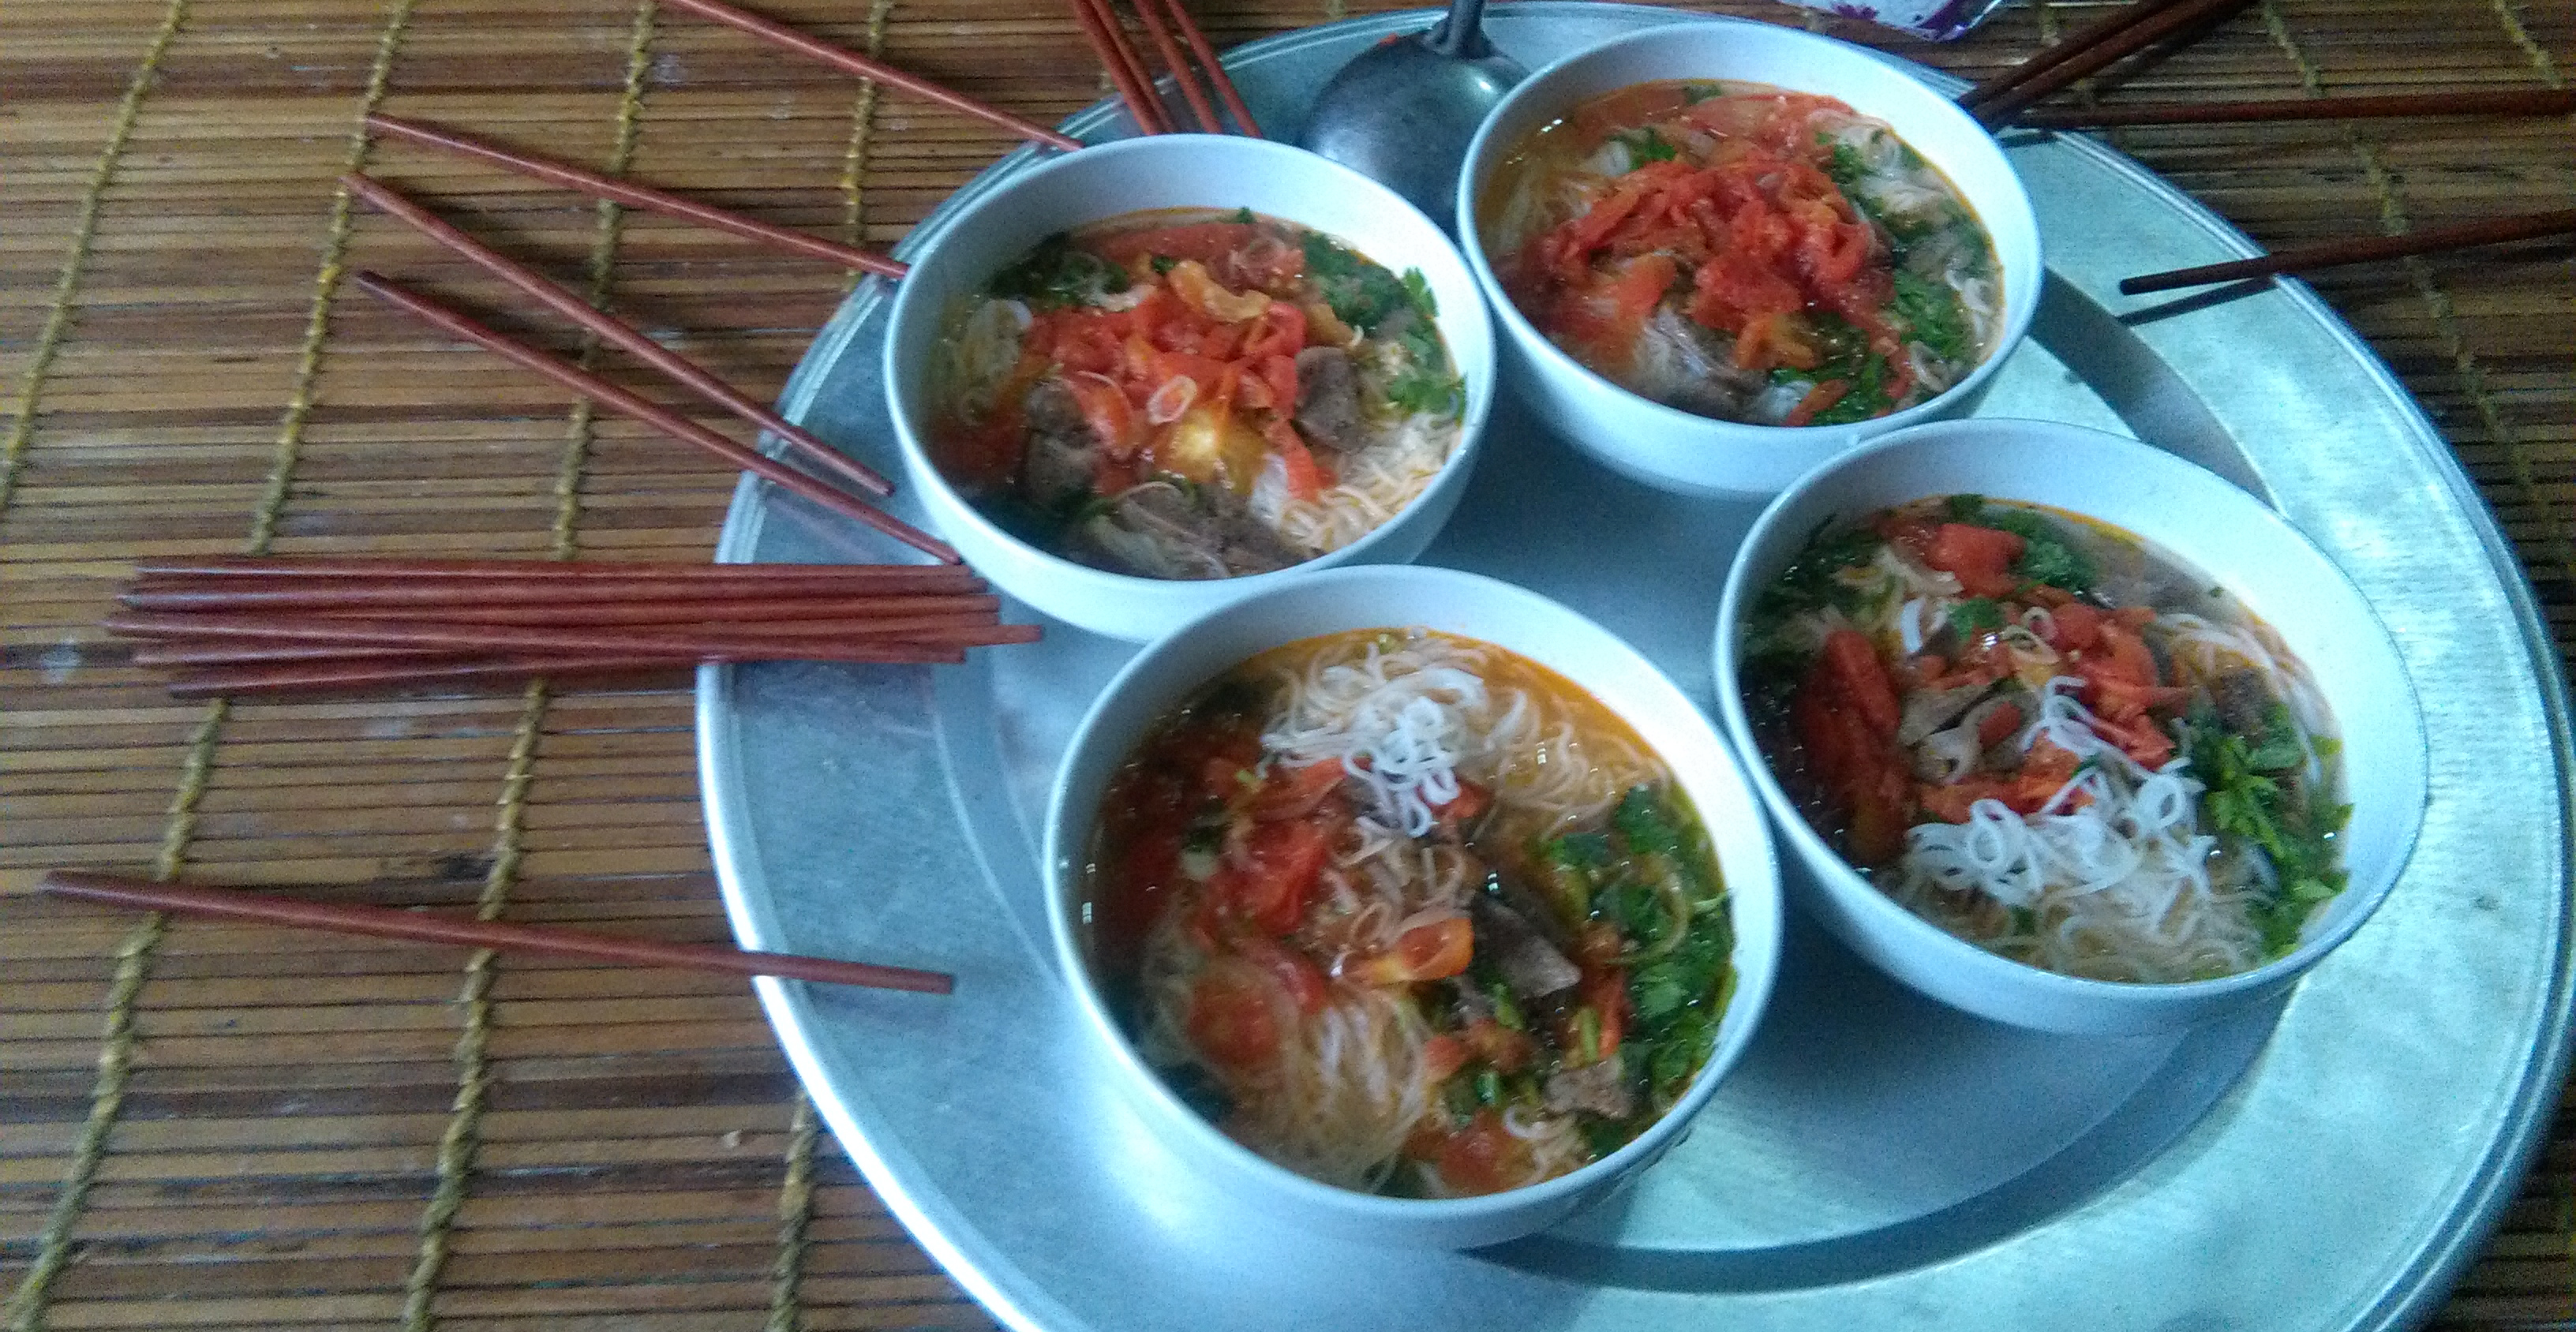 Best 7 street food NOODLES I had in Southeast Asia